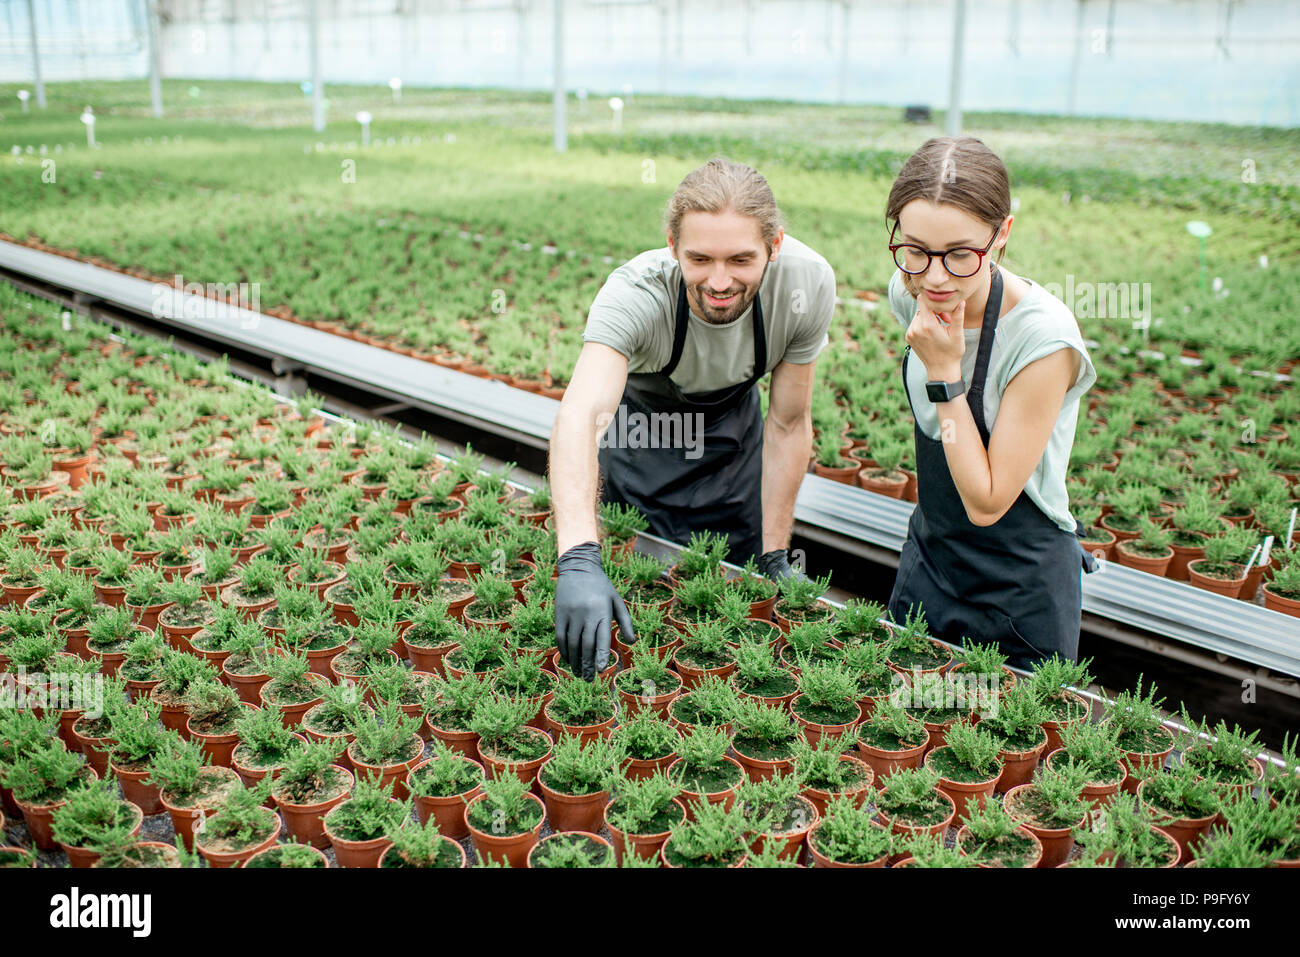 Workers in the greenhouse of plants production - Stock Image